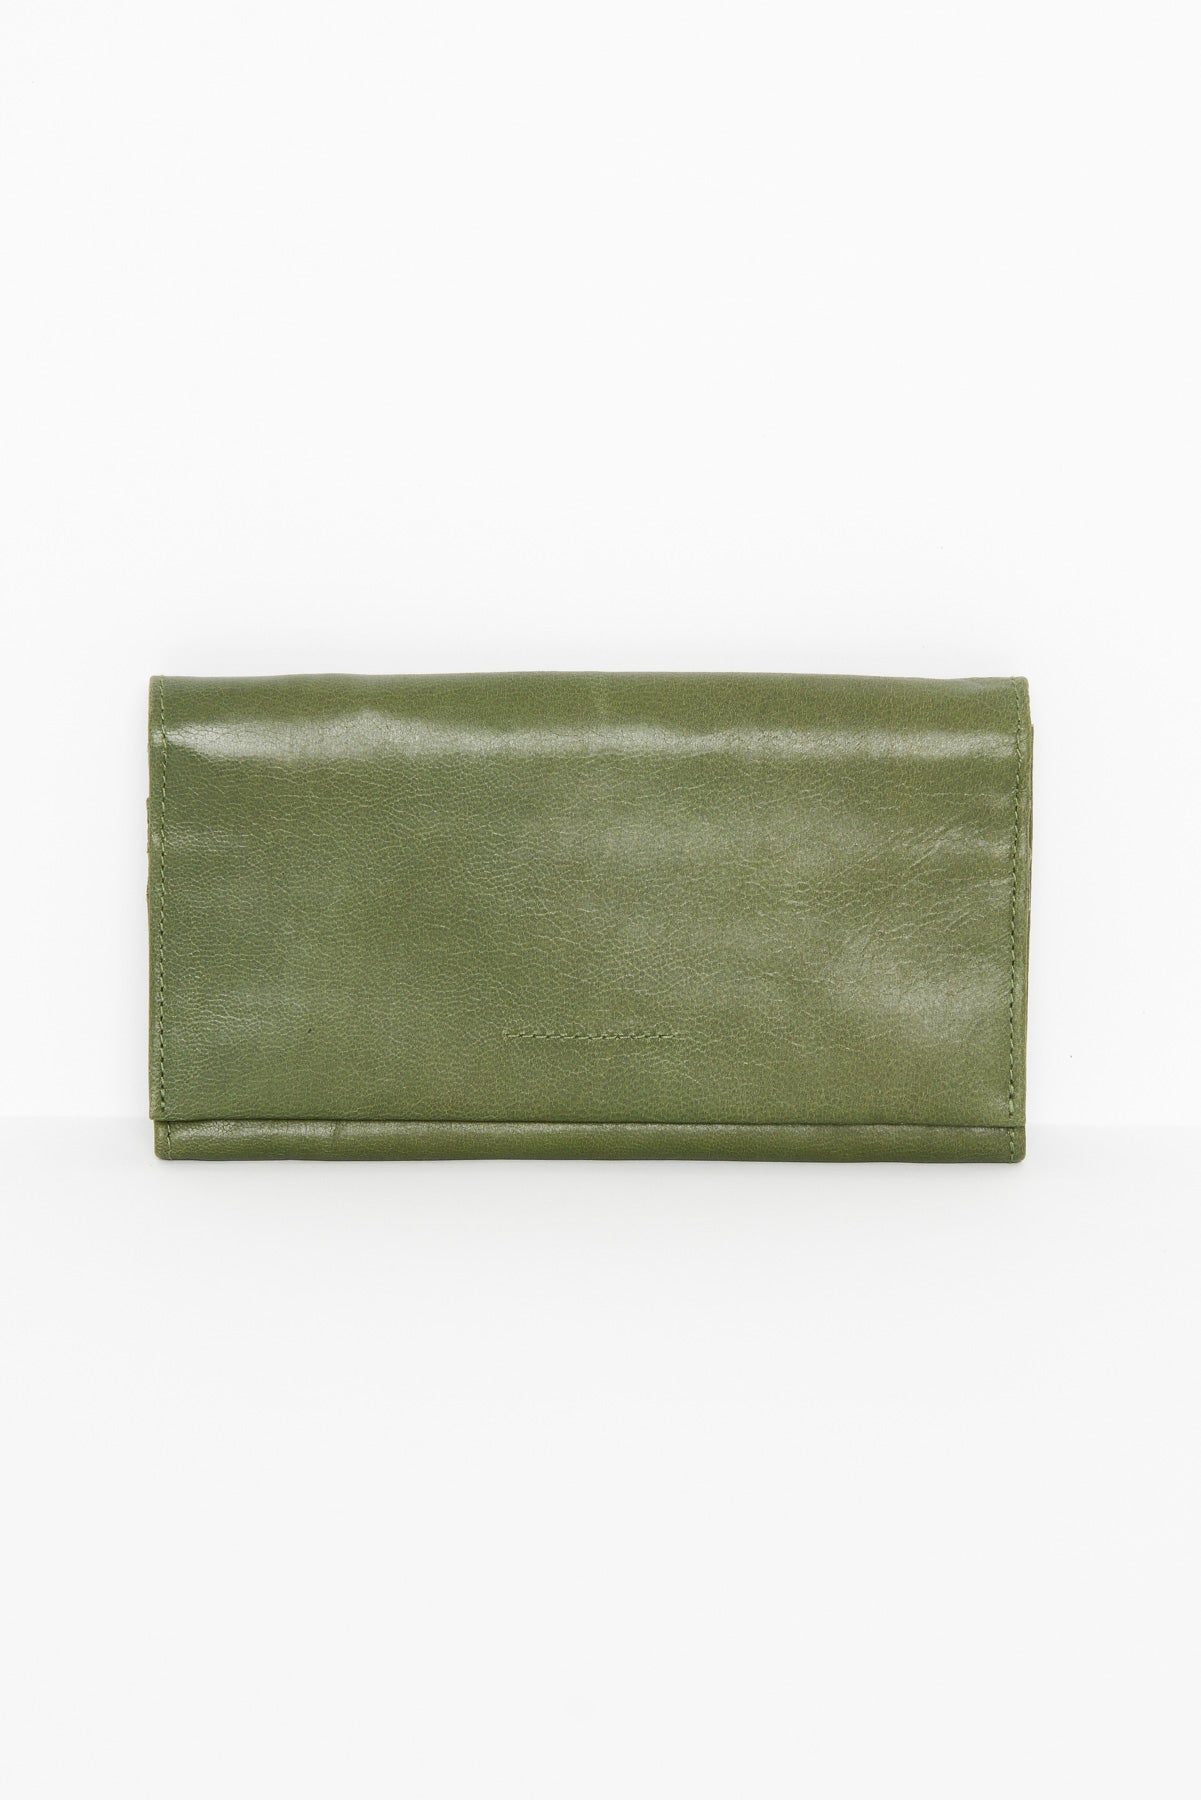 Eva Olive Leather Wallet - Blue Bungalow